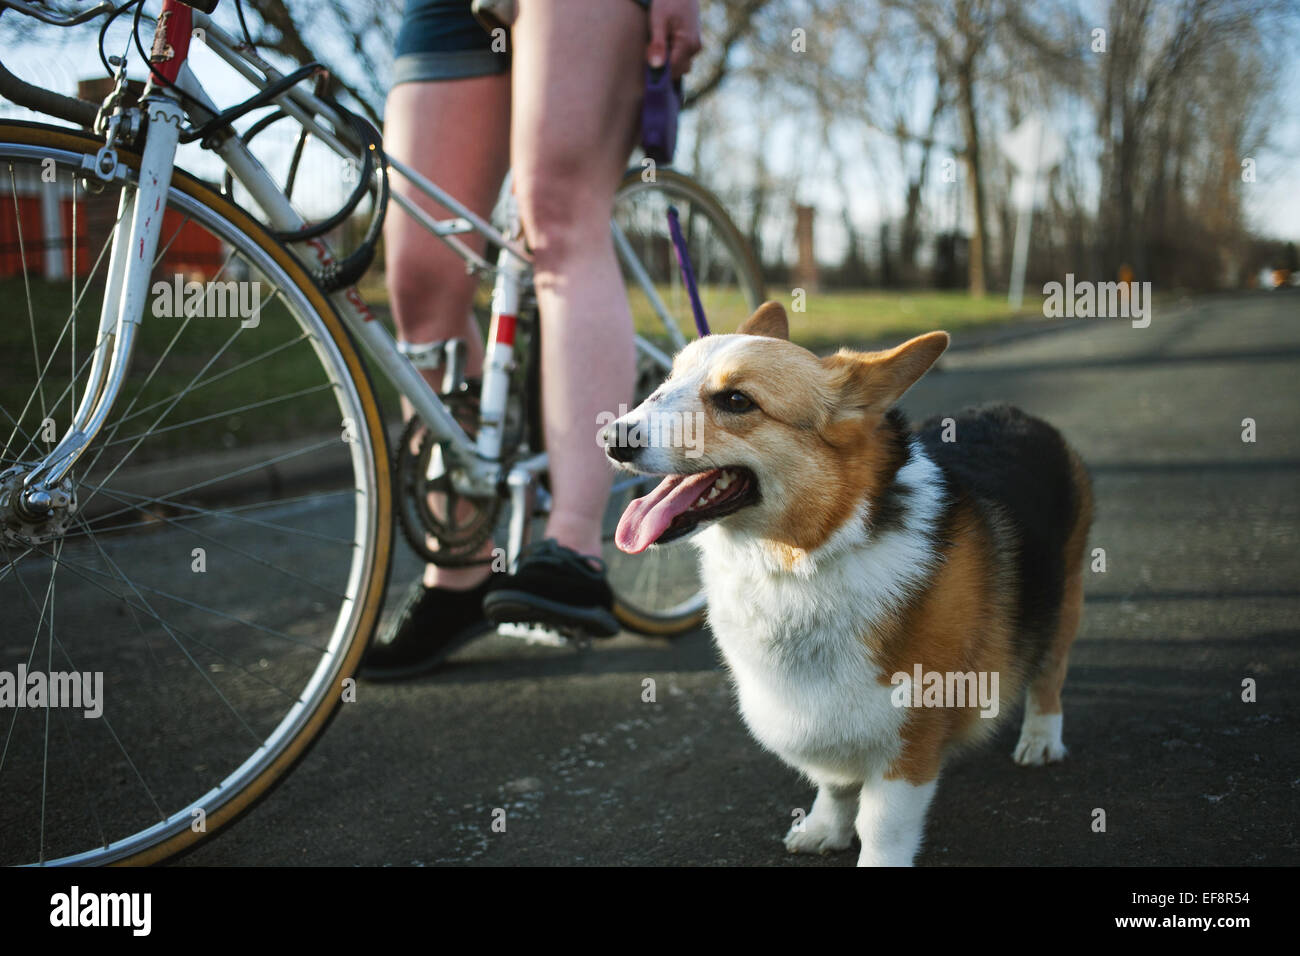 Pembroke Welsh Corgi standing by side of young woman on bicycle - Stock Image